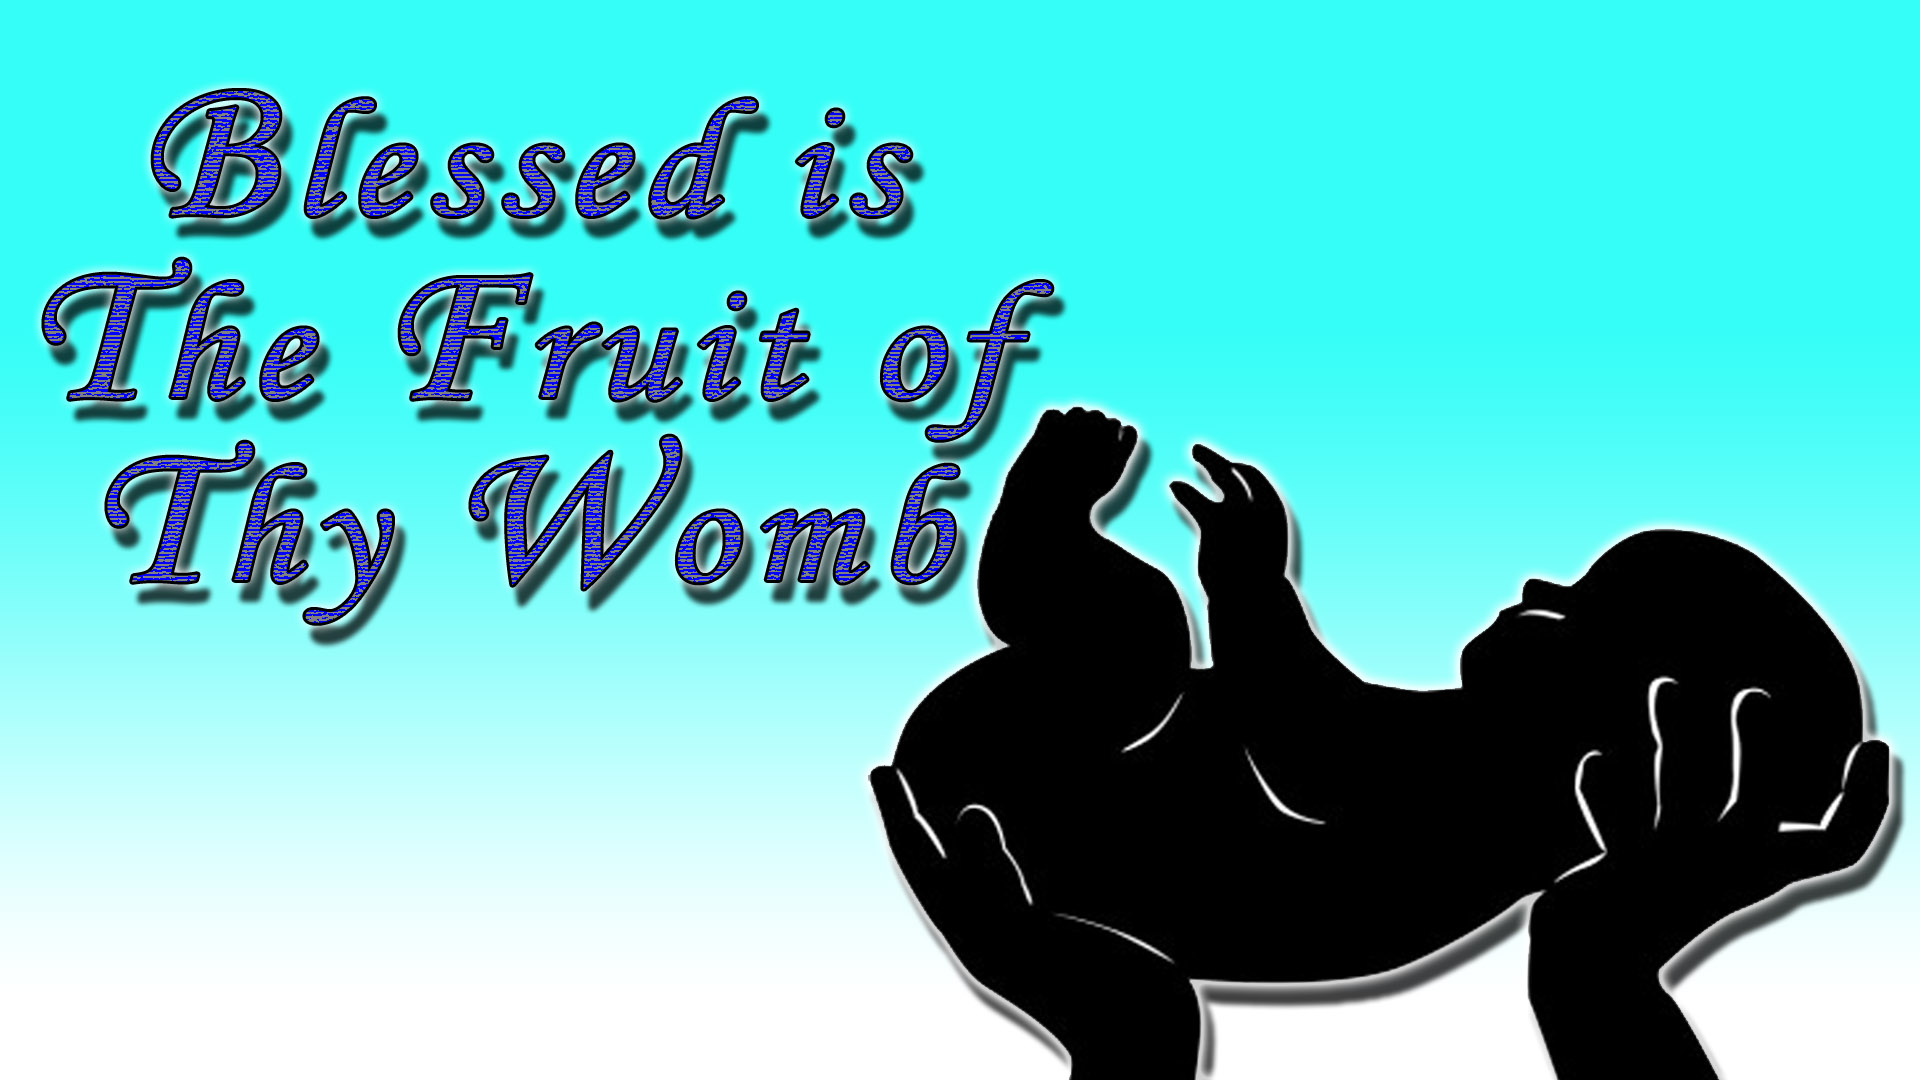 BLESSED IS THE FRUIT OF THY WOMB (12-23-18)